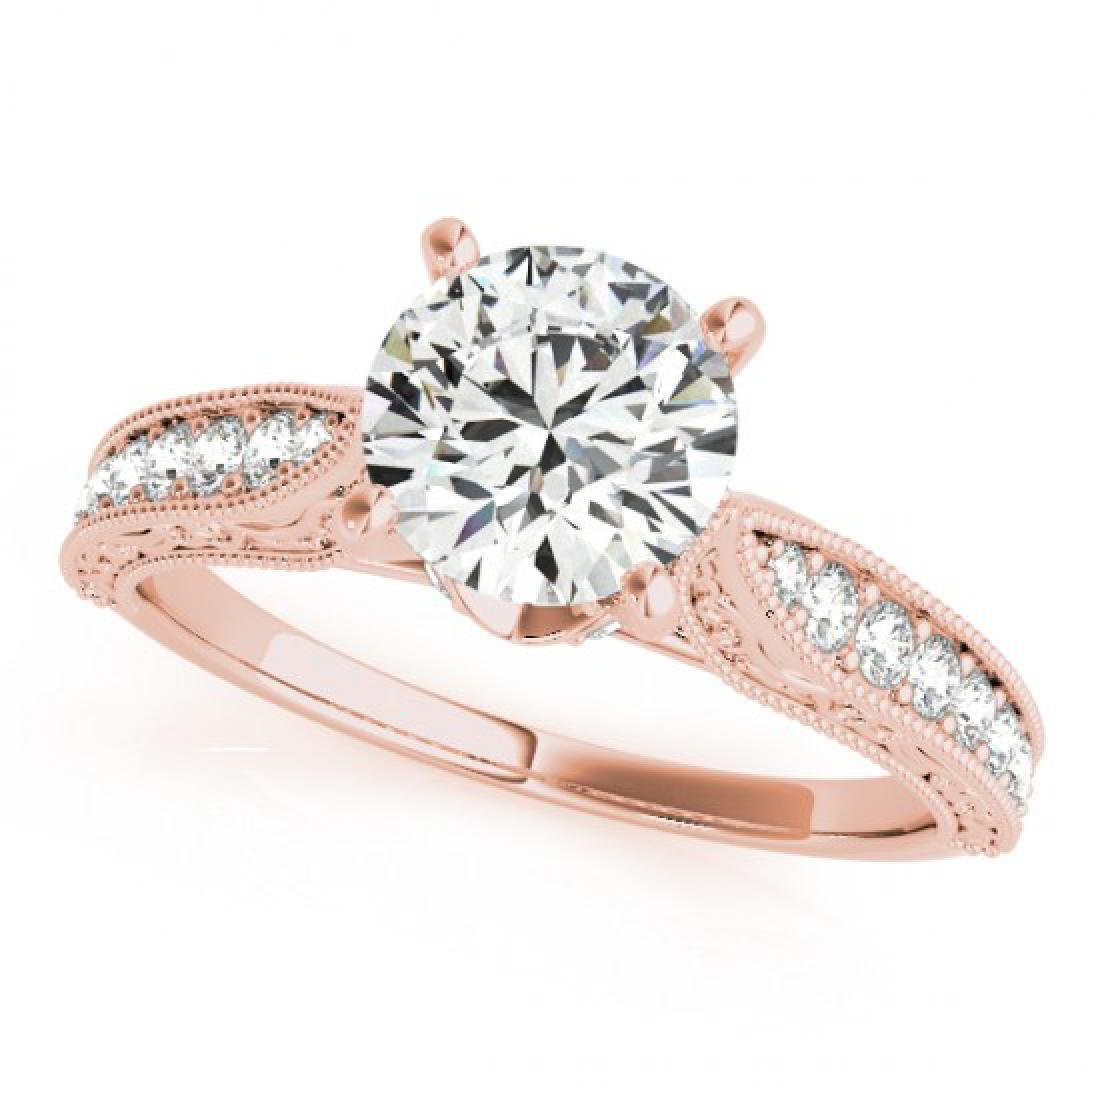 0.75 CTW Certified VS/SI Diamond Solitaire Antique Ring